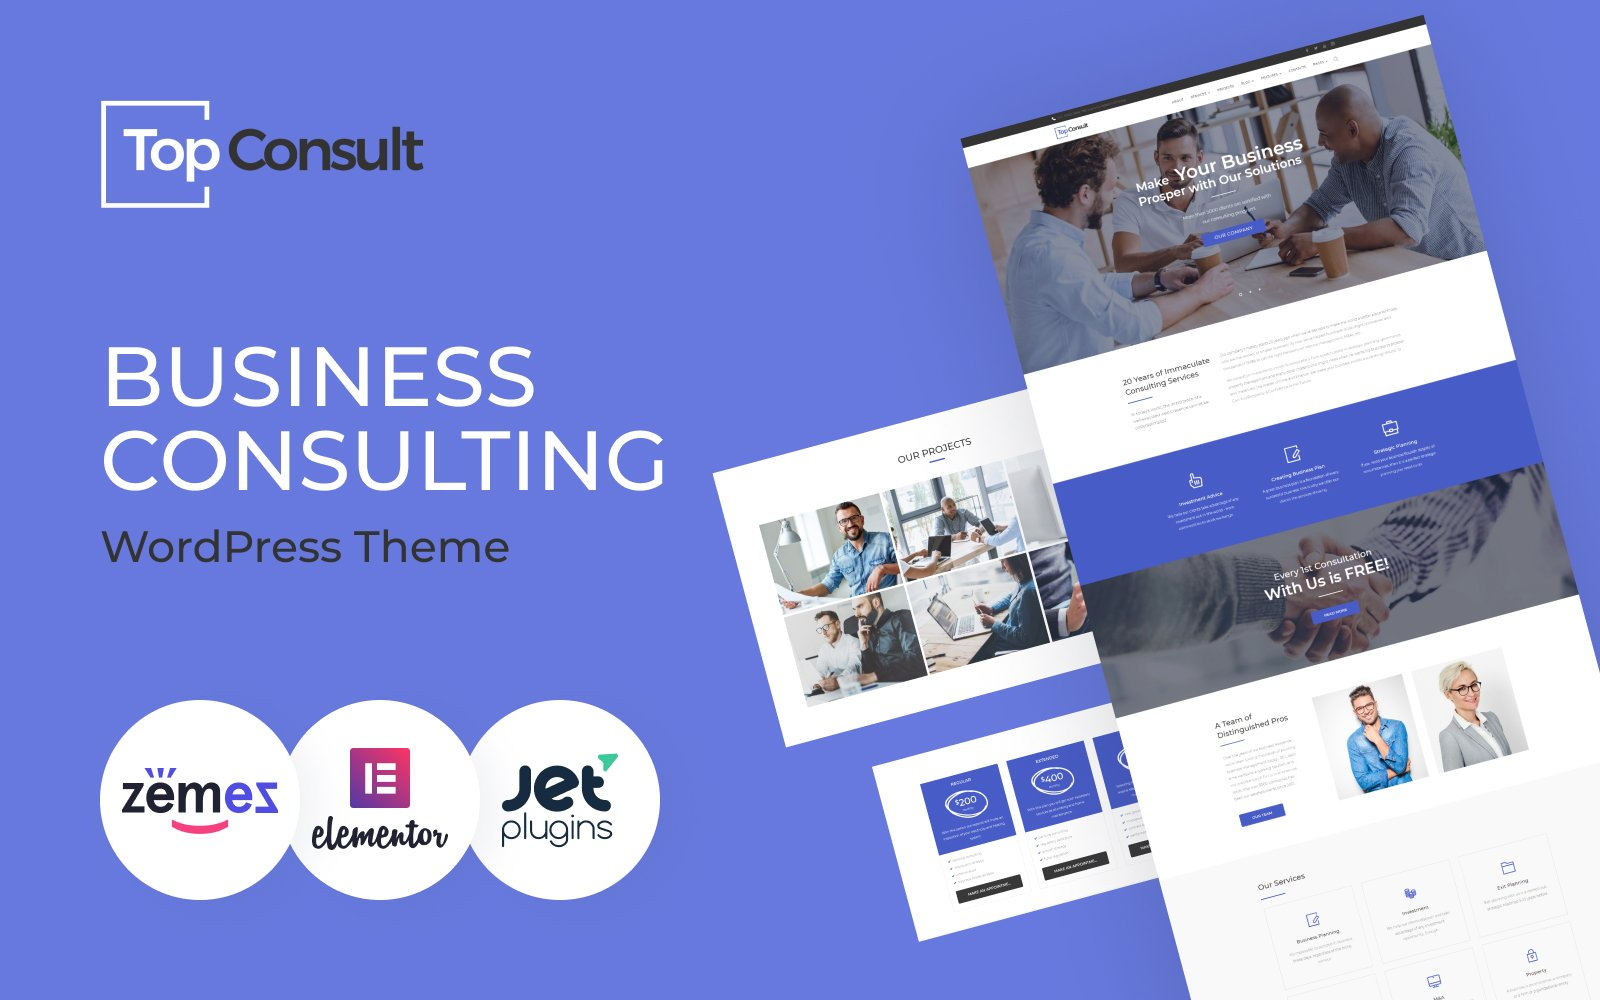 TopConsult - Business Consulting WordPress Theme WordPress Theme